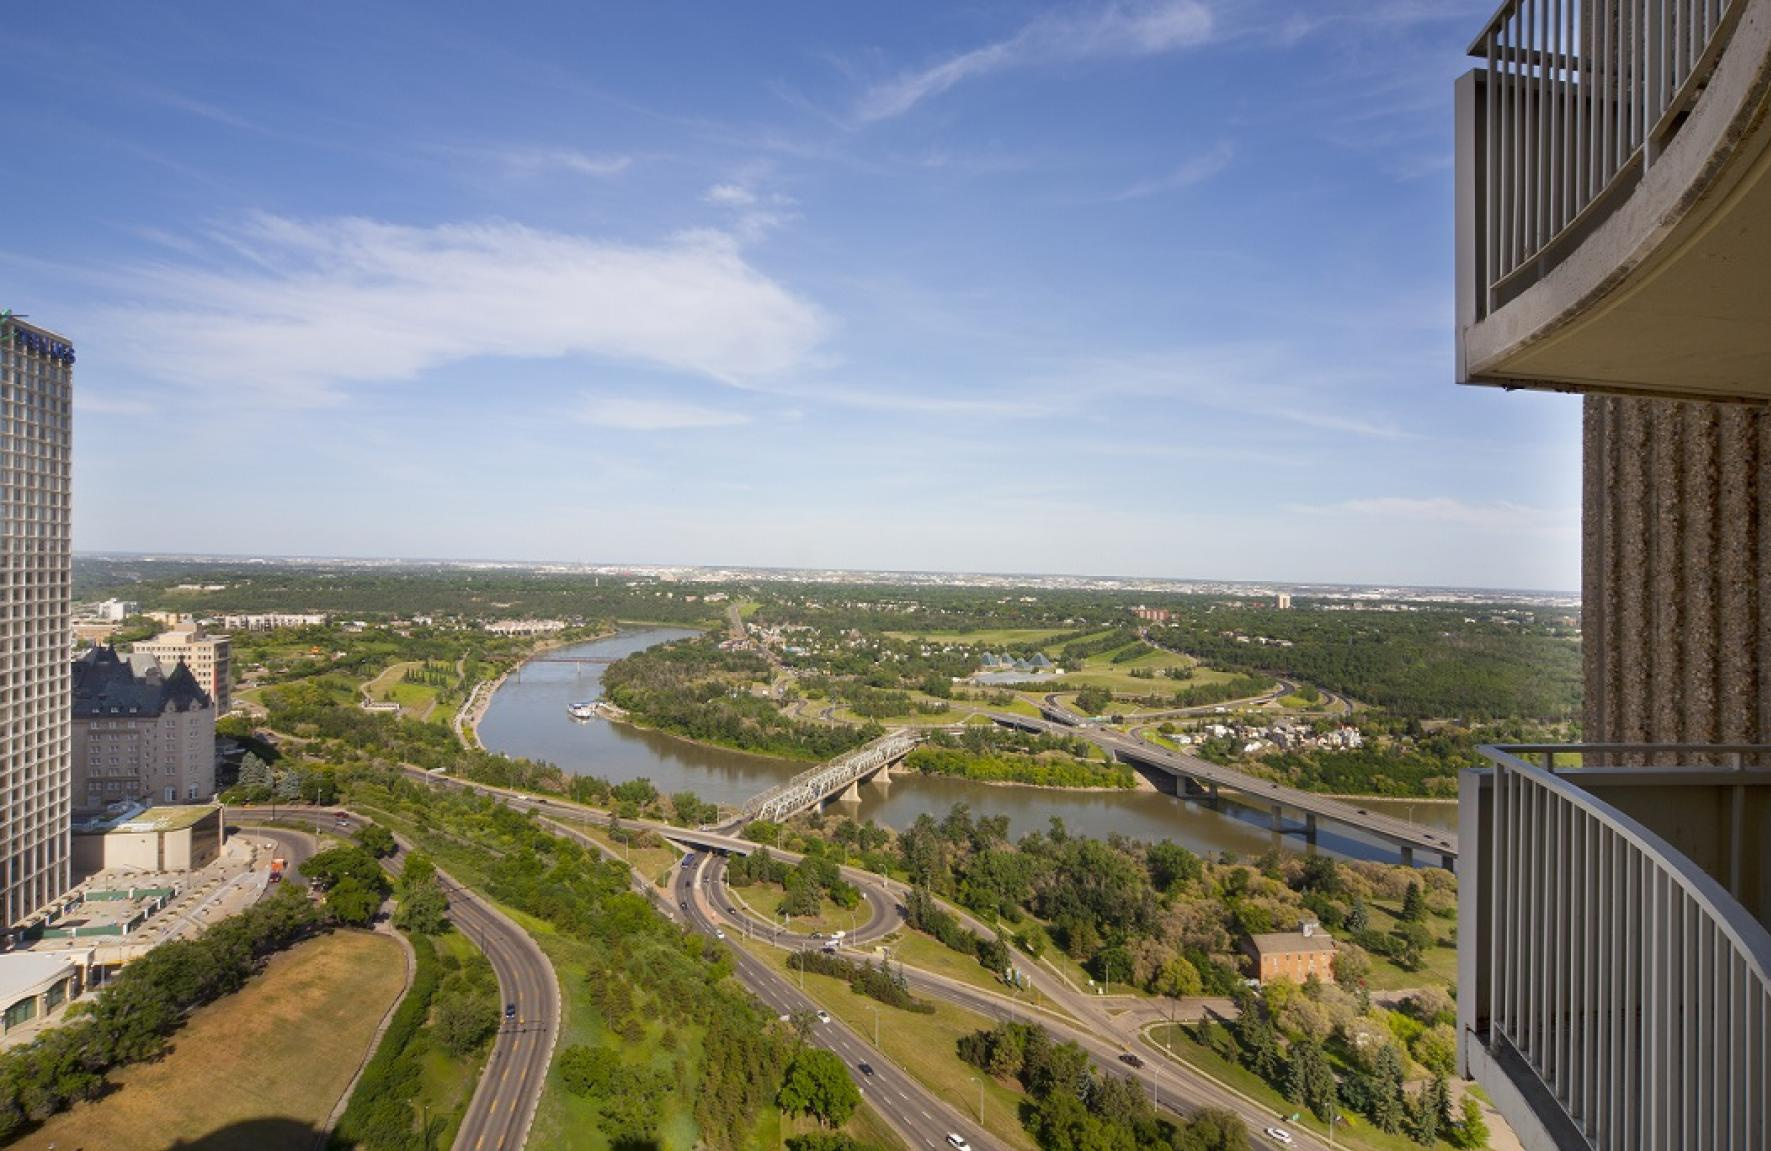 10205 100 Avenue in Edmonton, AB is Now Available